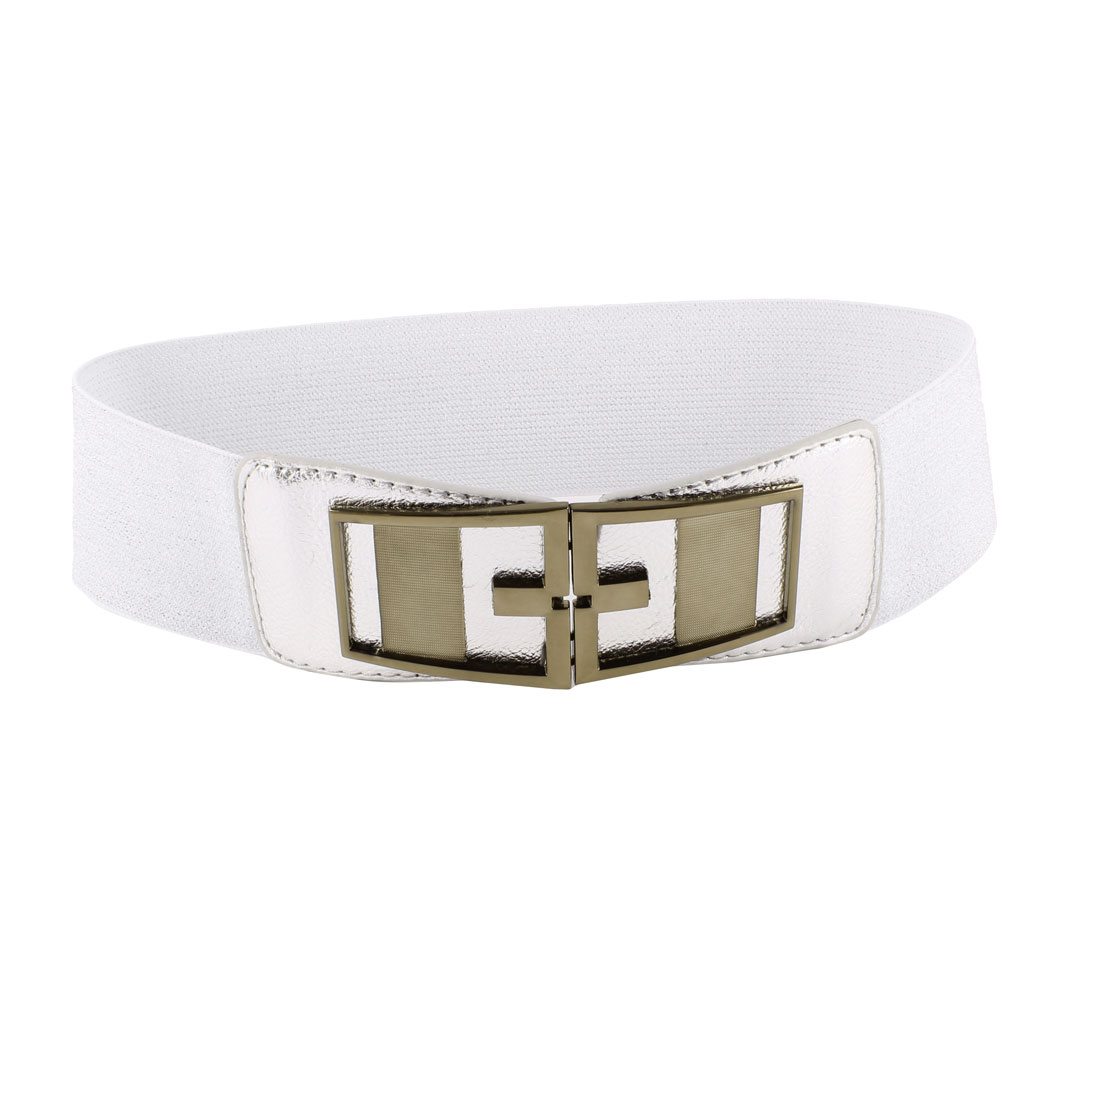 Symmetric Interlocking Buckle Elastic Cinch Waist Belt Silver Tone for Women